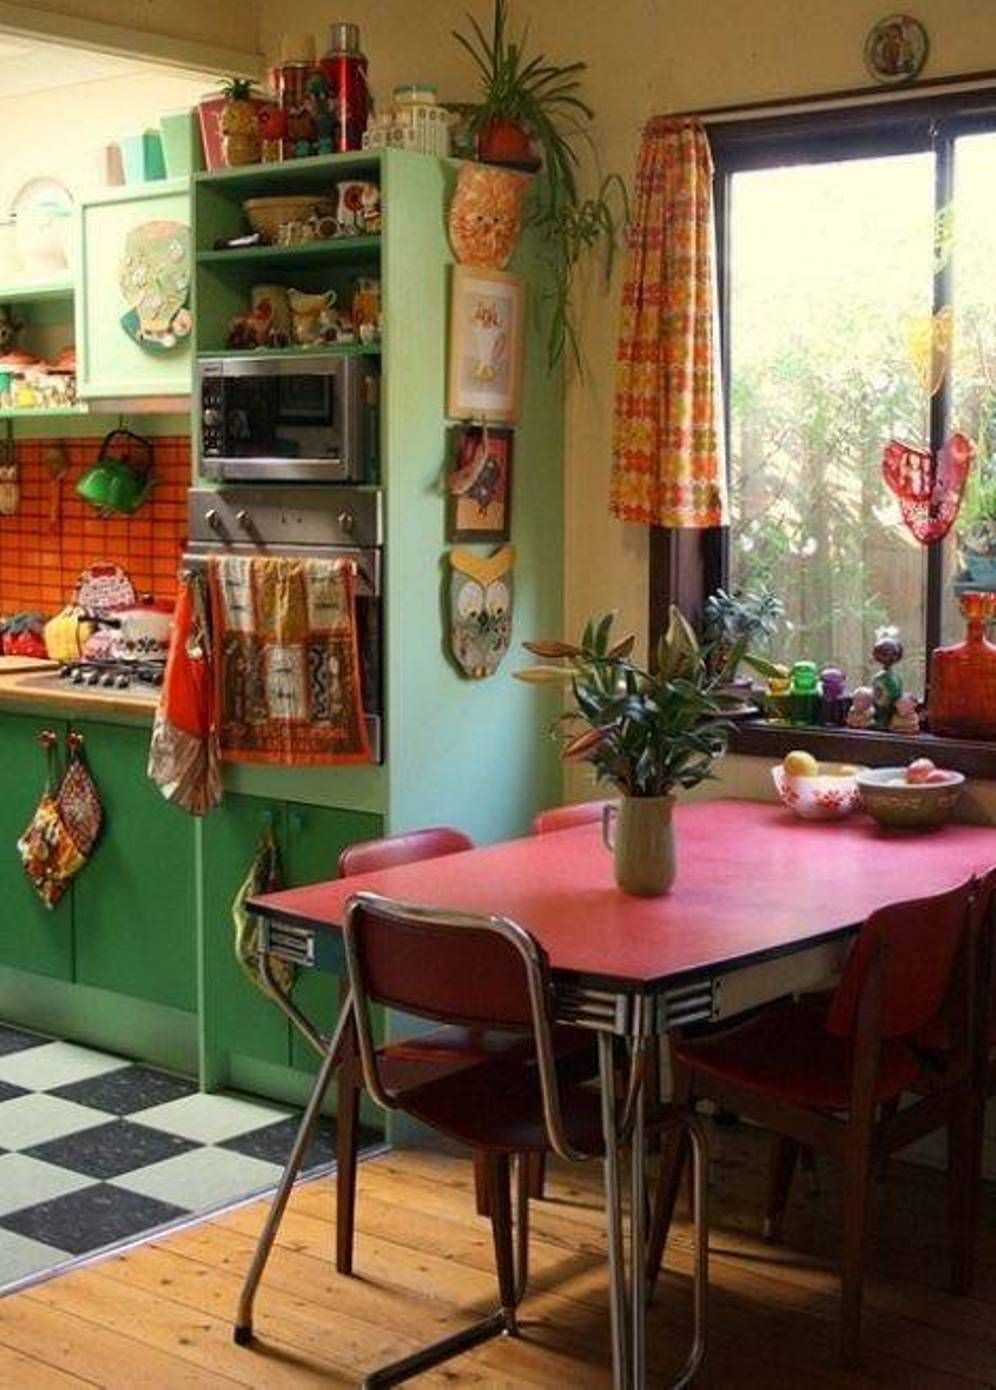 Vintage home interior pictures interior bohemian style for Retro dekoration